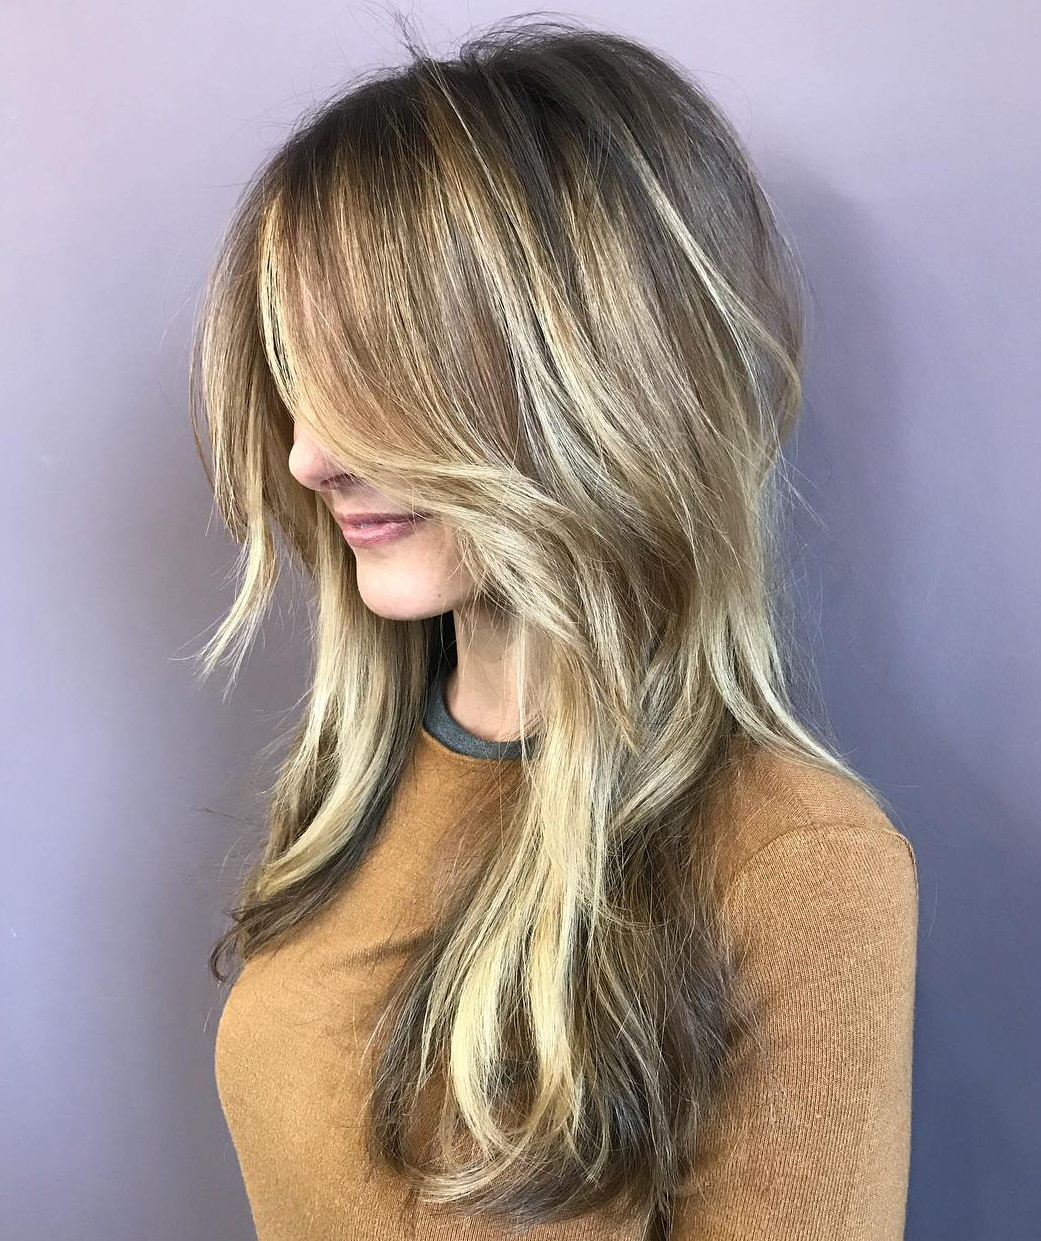 35 Stunning Long Haircuts For Women To Try In 2020